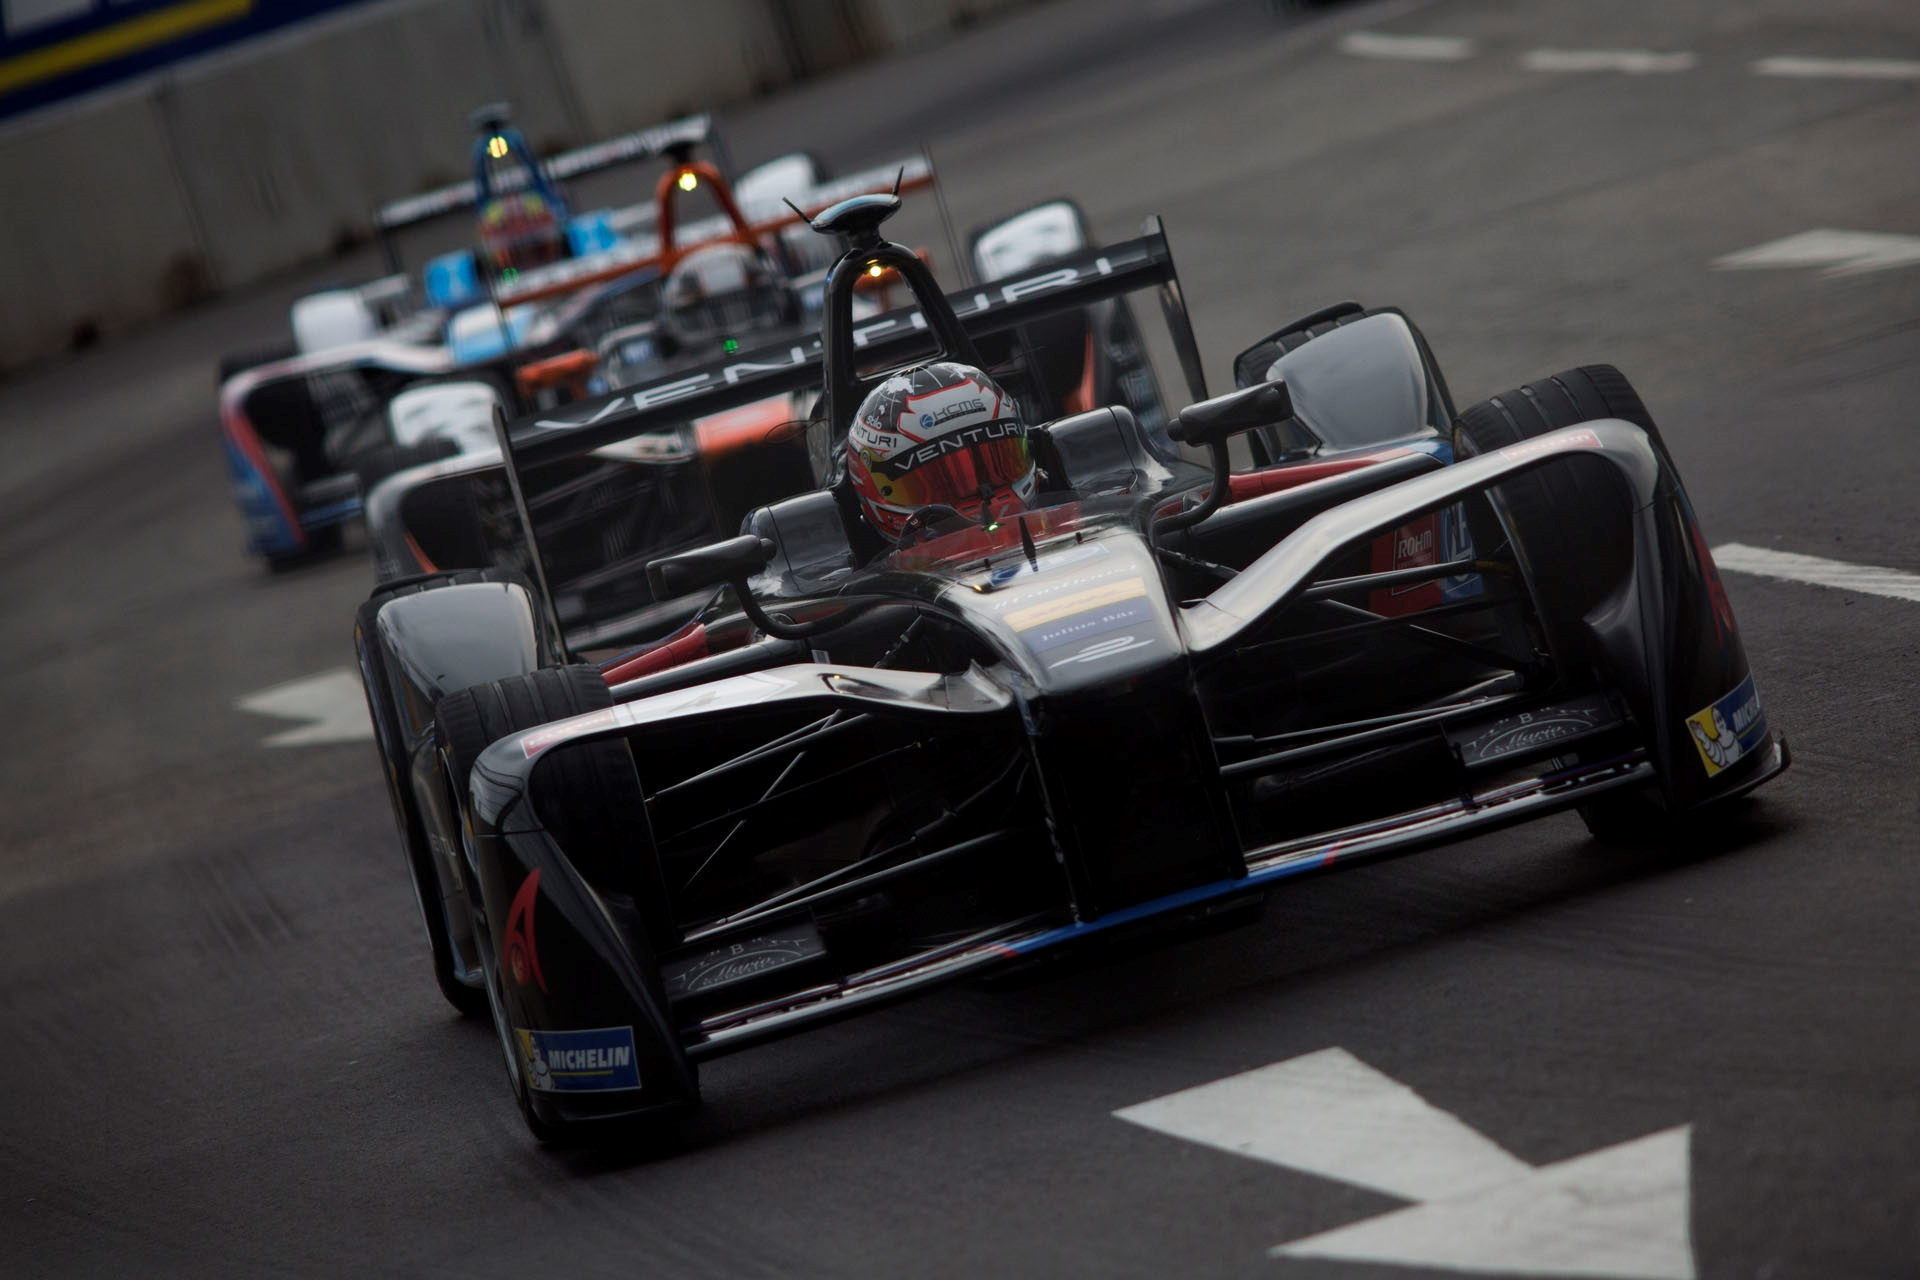 After scoring an impressive 6th in Formula E last year, Stephane Sarrazin is back with Venturi and hopes to maintain the form Photo: FIA Formula E